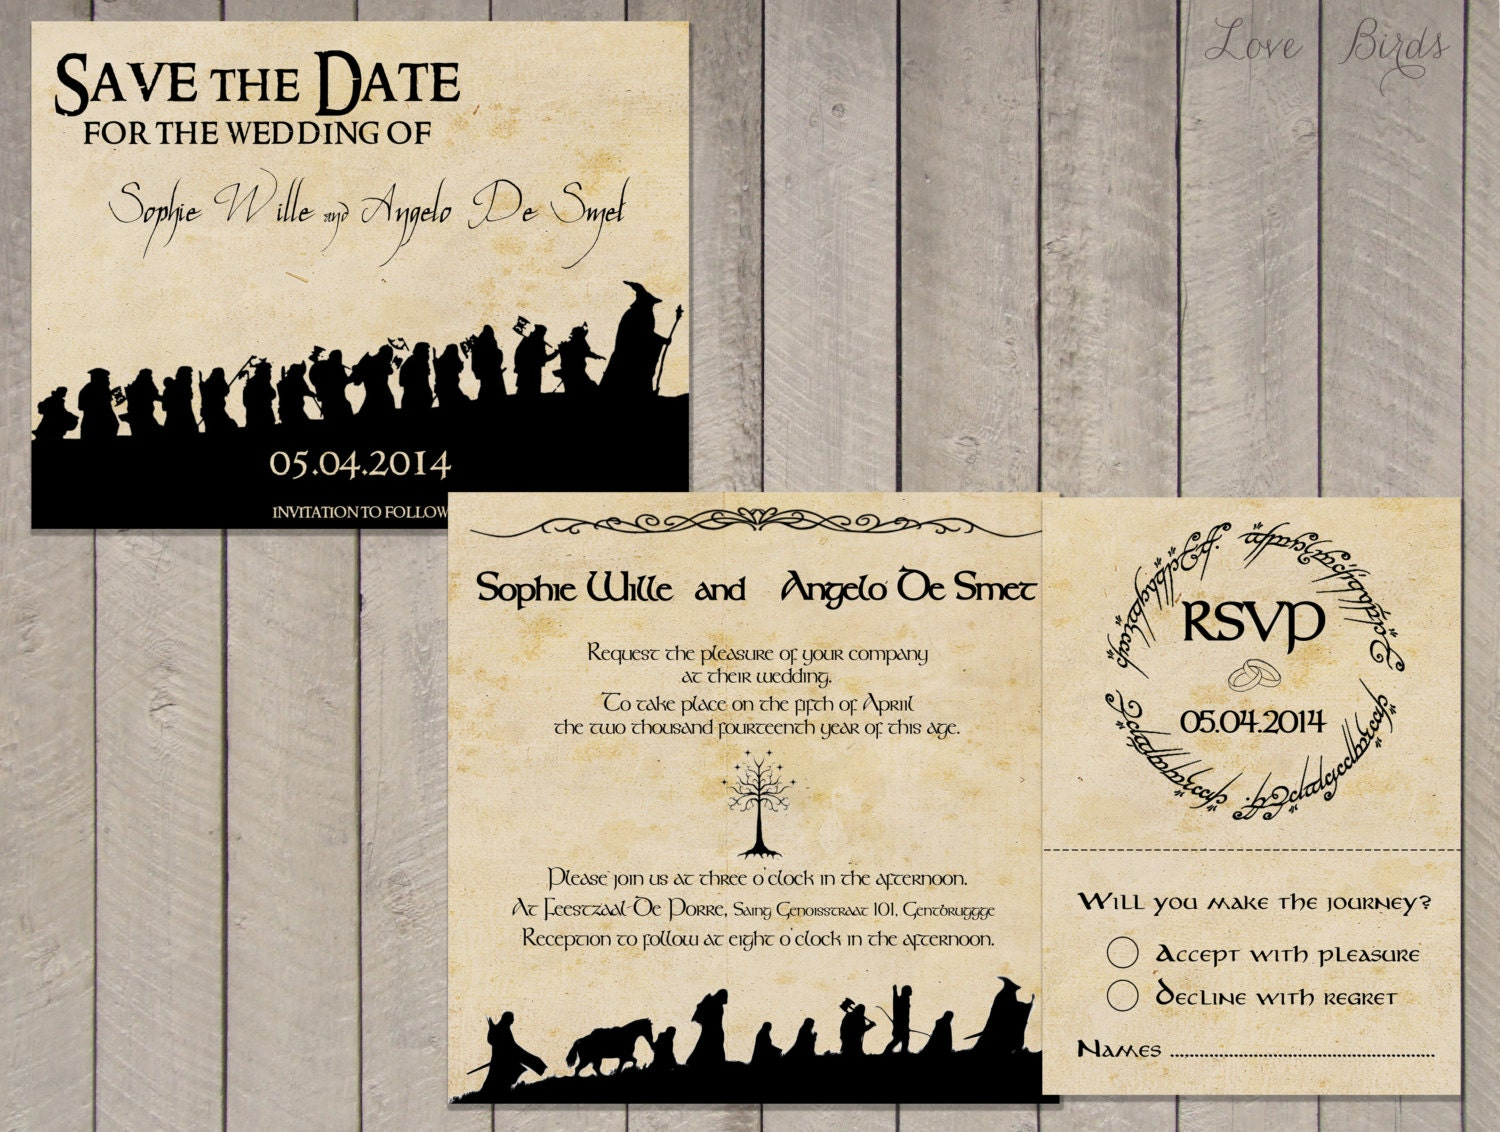 Wedding Invitation Rsvp Date: Wedding Invitation Set Lord Of The Rings Save The Date